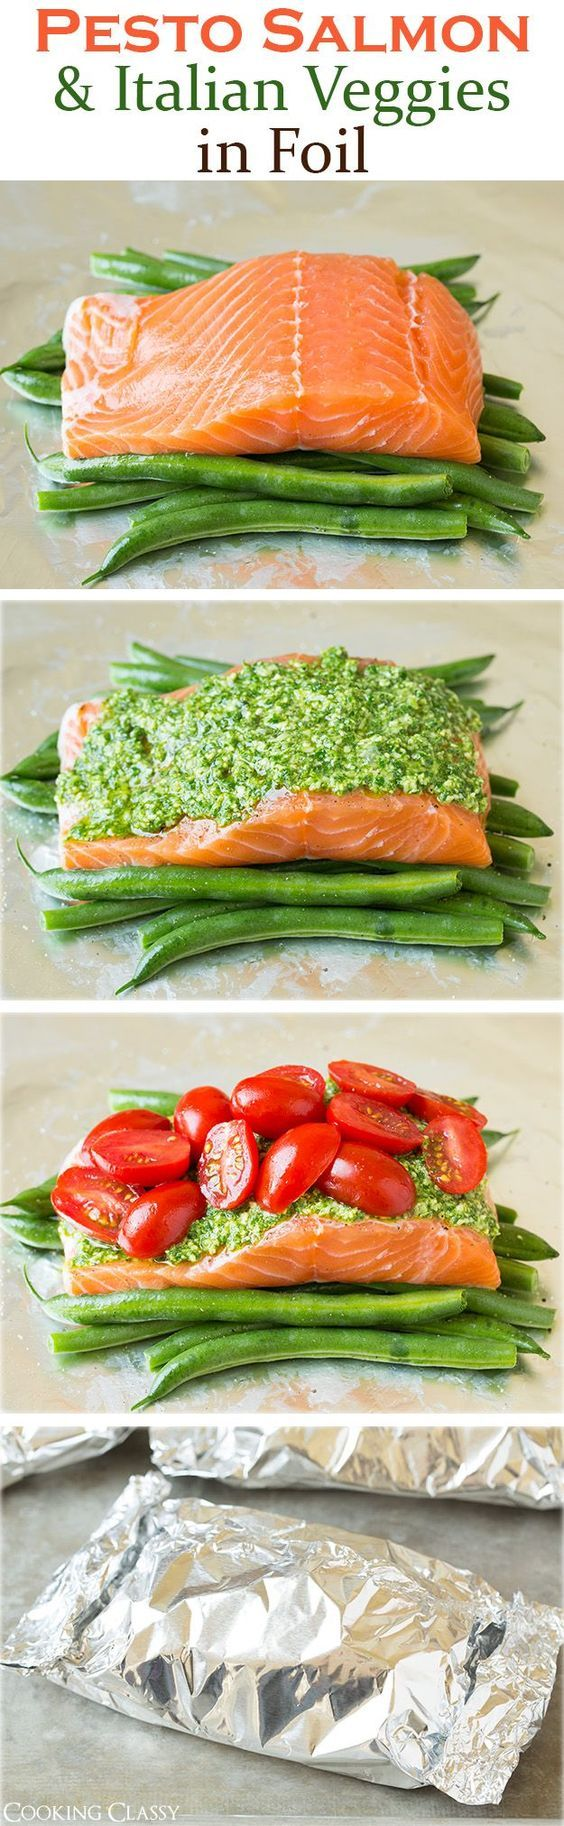 Pesto Salmon and Italian Veggies in Foil - this is an easy, flavorful dinner that is sure to please! So delicious!